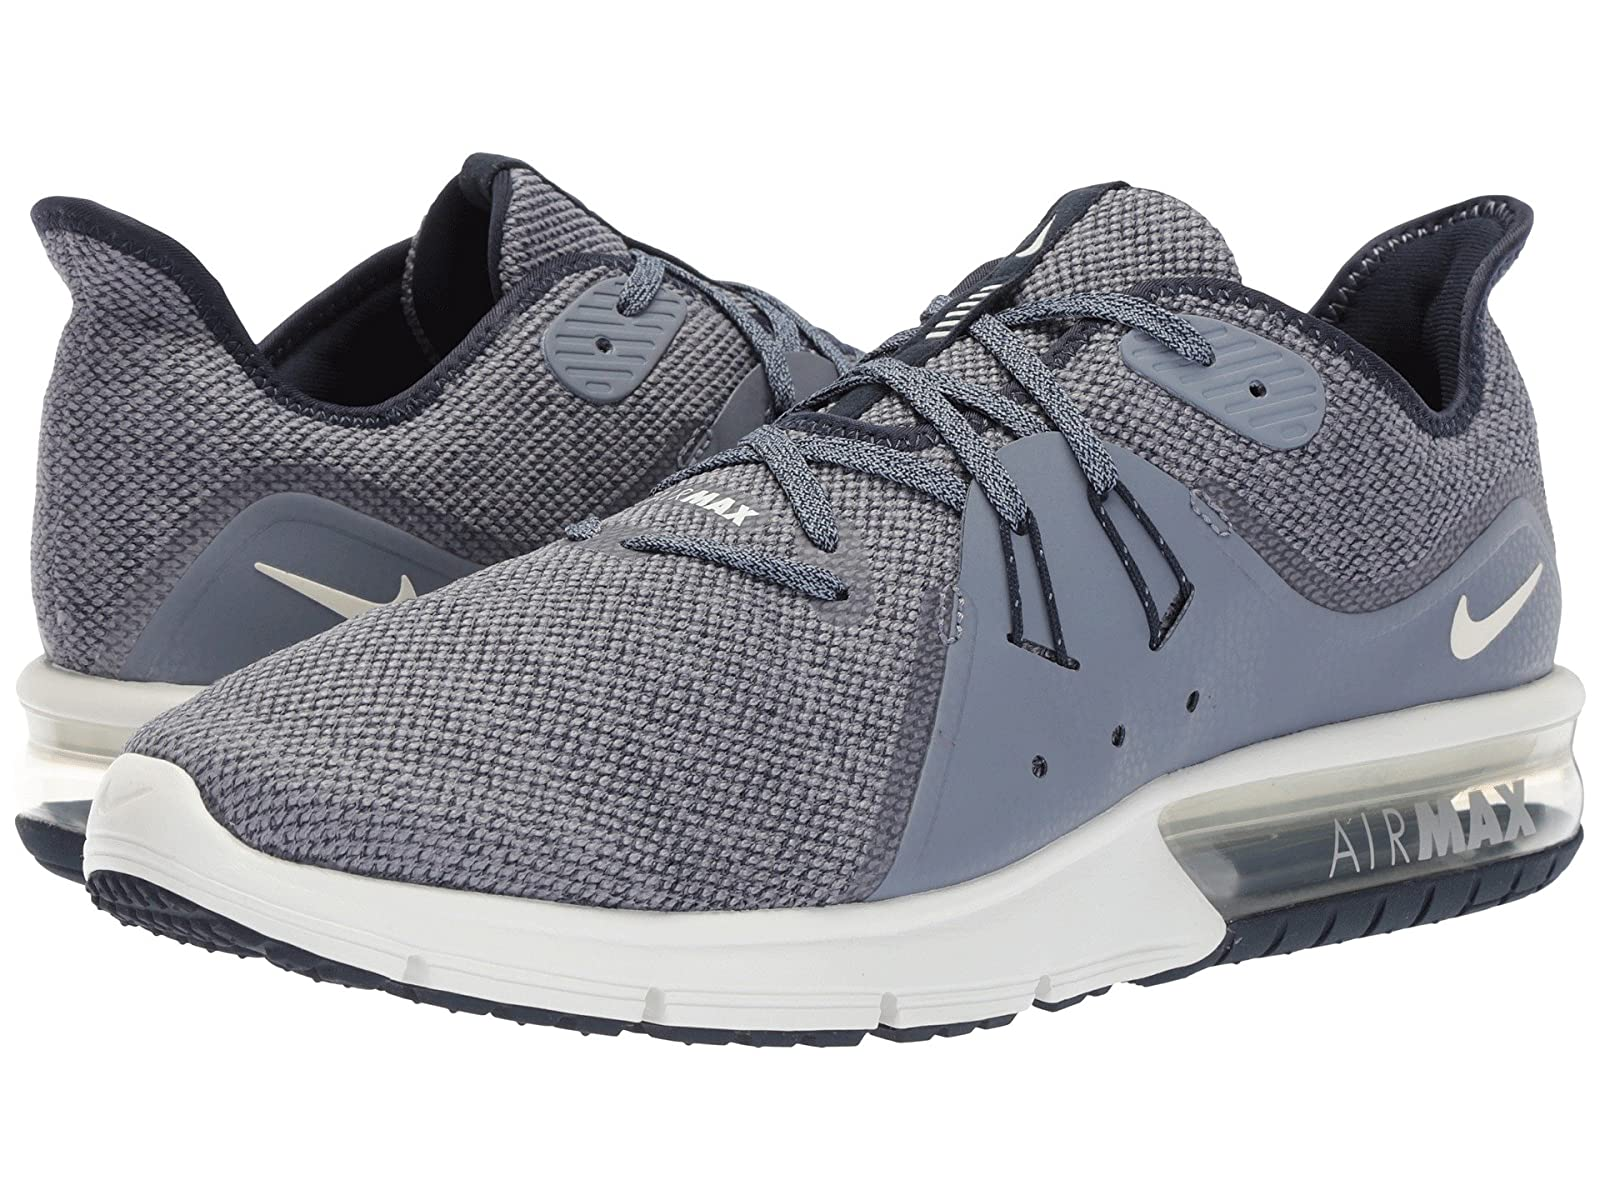 Nike Air Max Sequent 3Atmospheric grades have affordable shoes